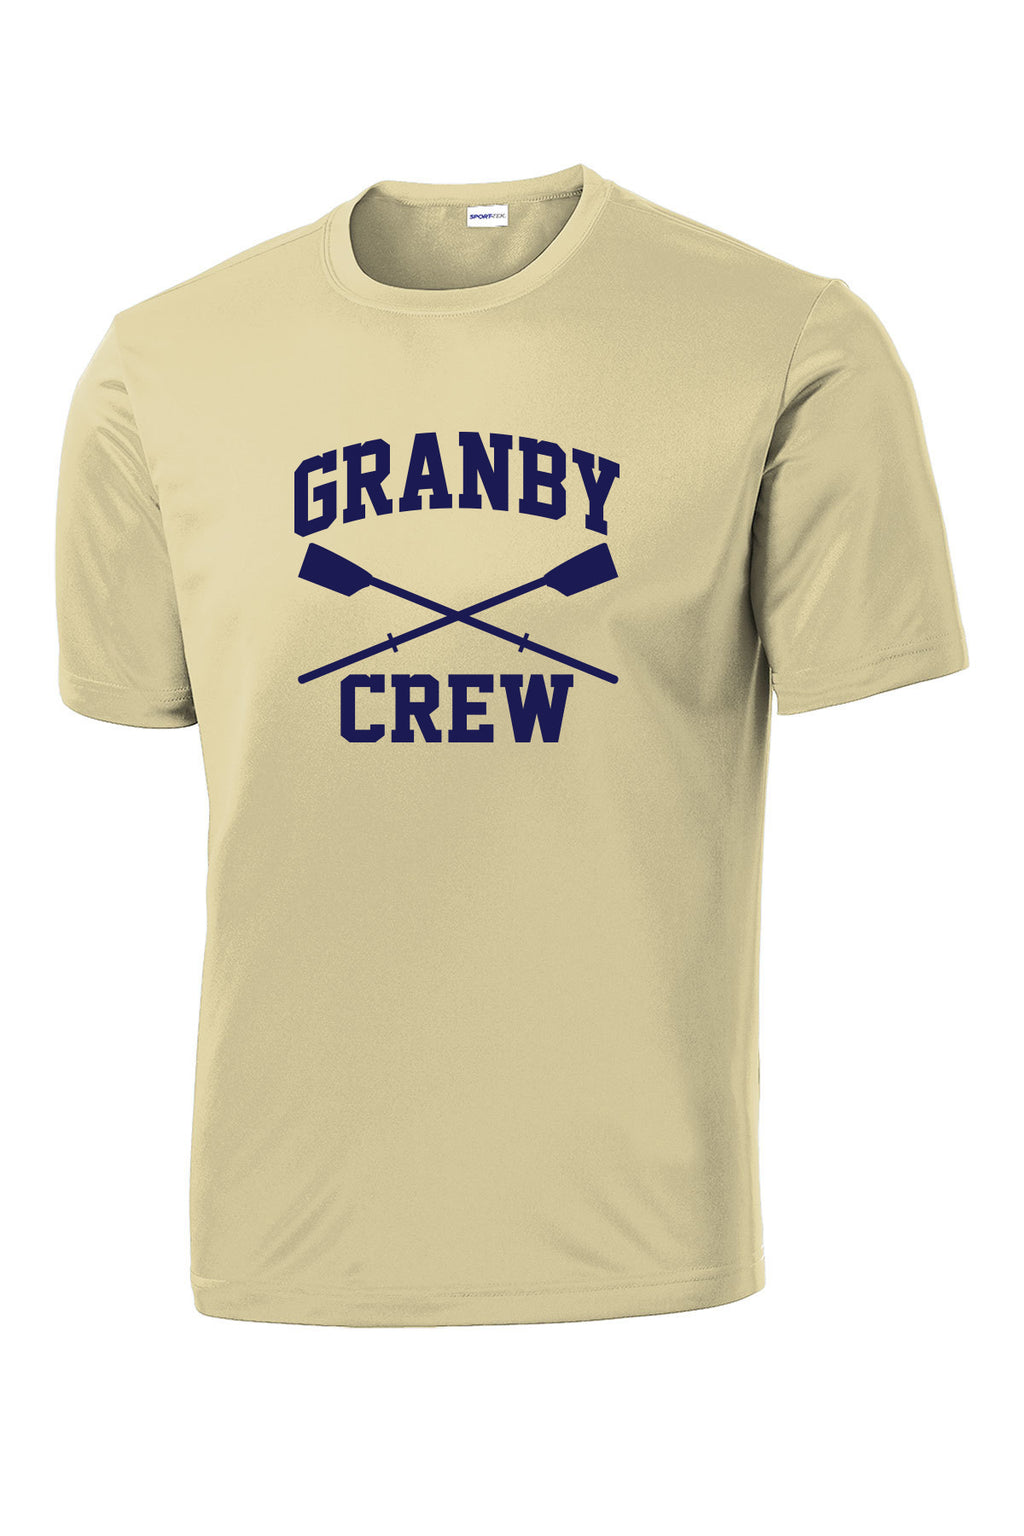 Granby Crew Men's Drytex Performance T-Shirt